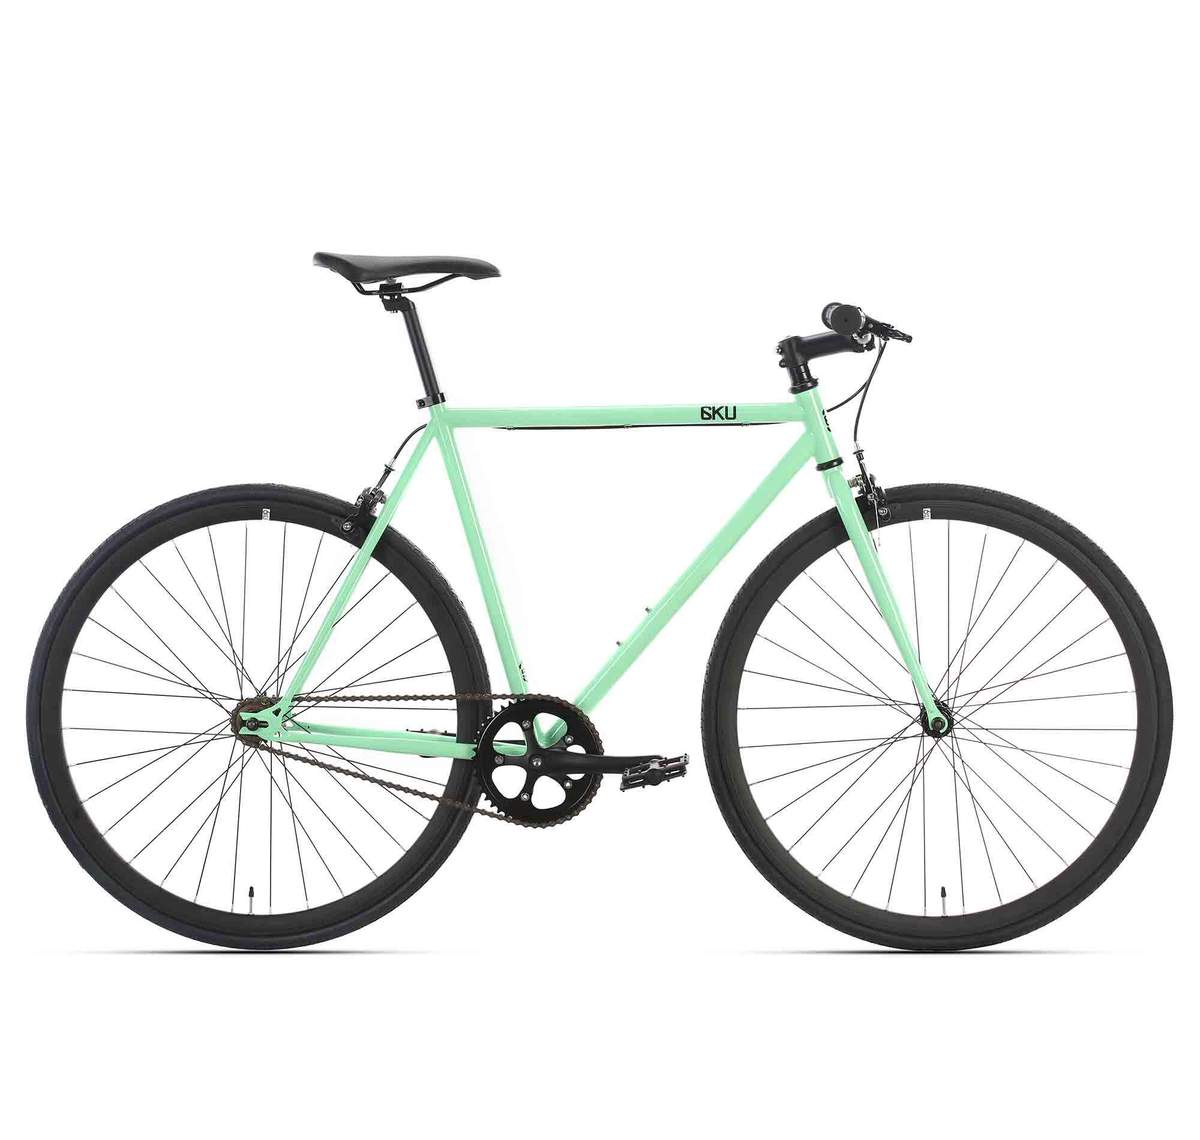 6KU Fixed Gear/Single Speed